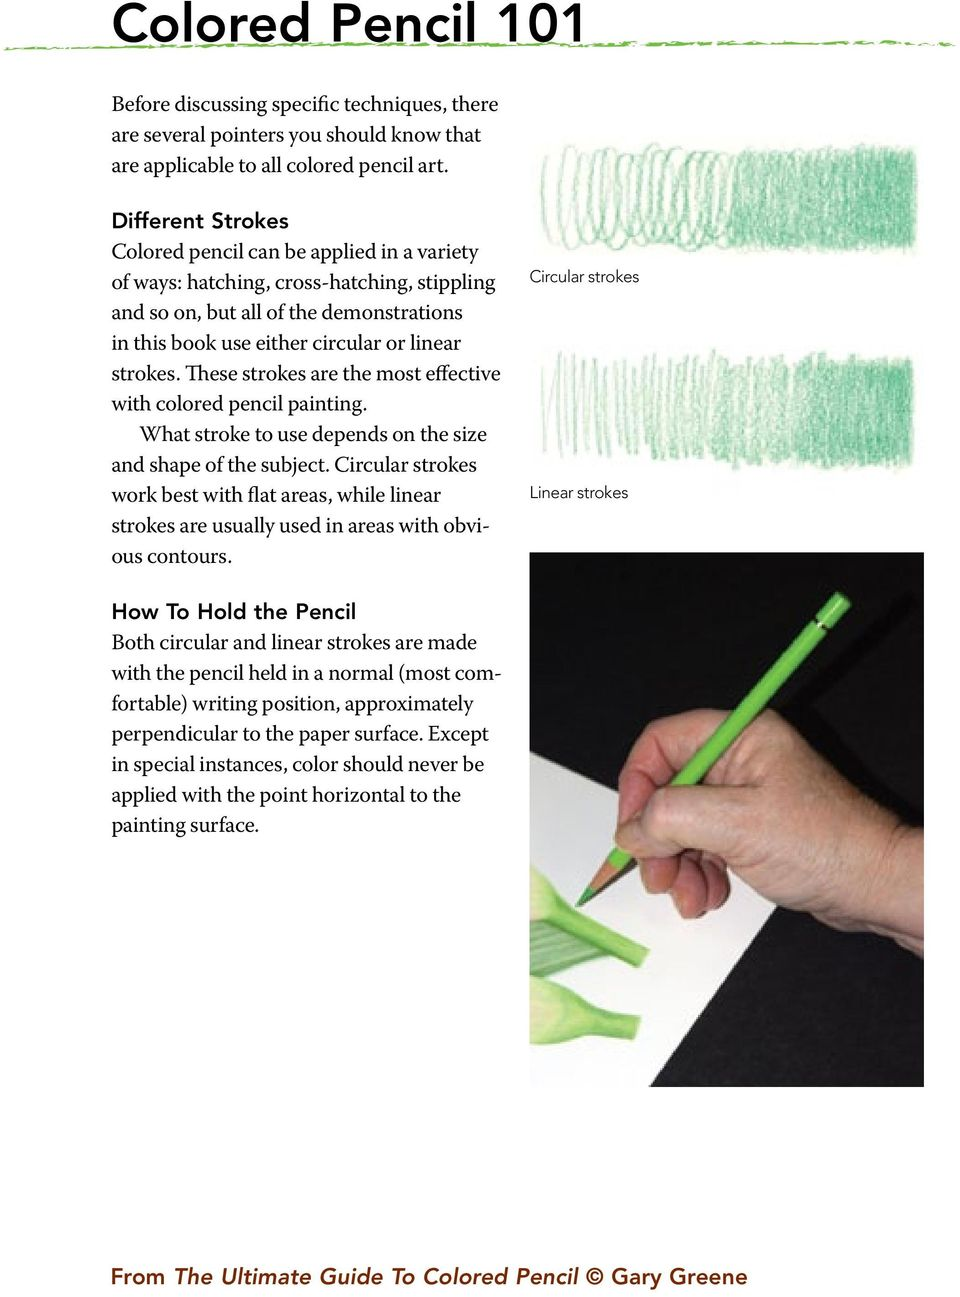 These strokes are the most effective with colored pencil painting. What stroke to use depends on the size and shape of the subject.